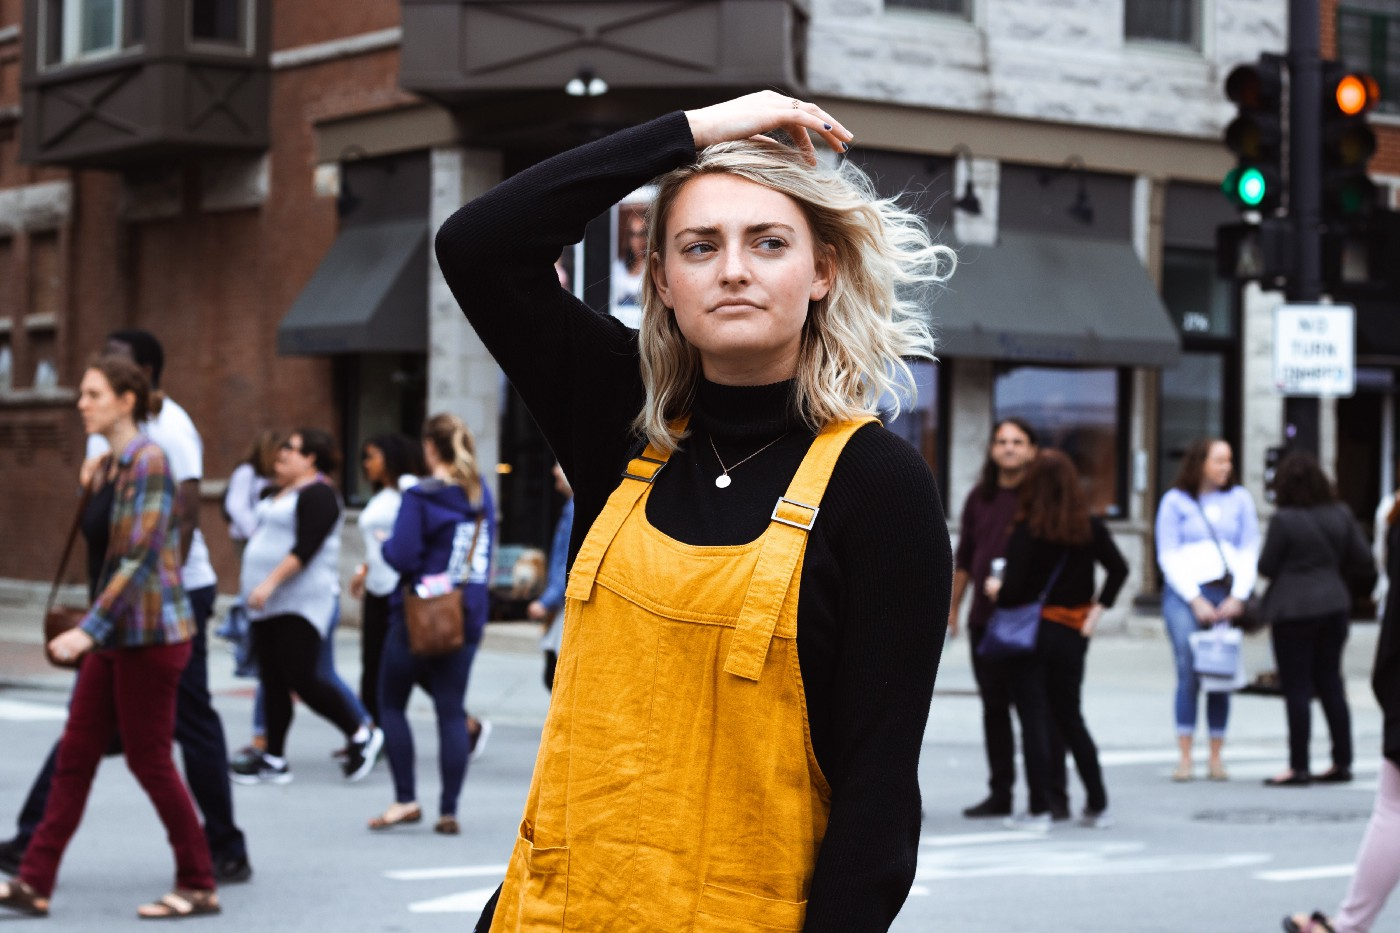 A young woman in a black turtleneck and gold overalls stands alone, lost in her thoughts, at a busy urban intersection.